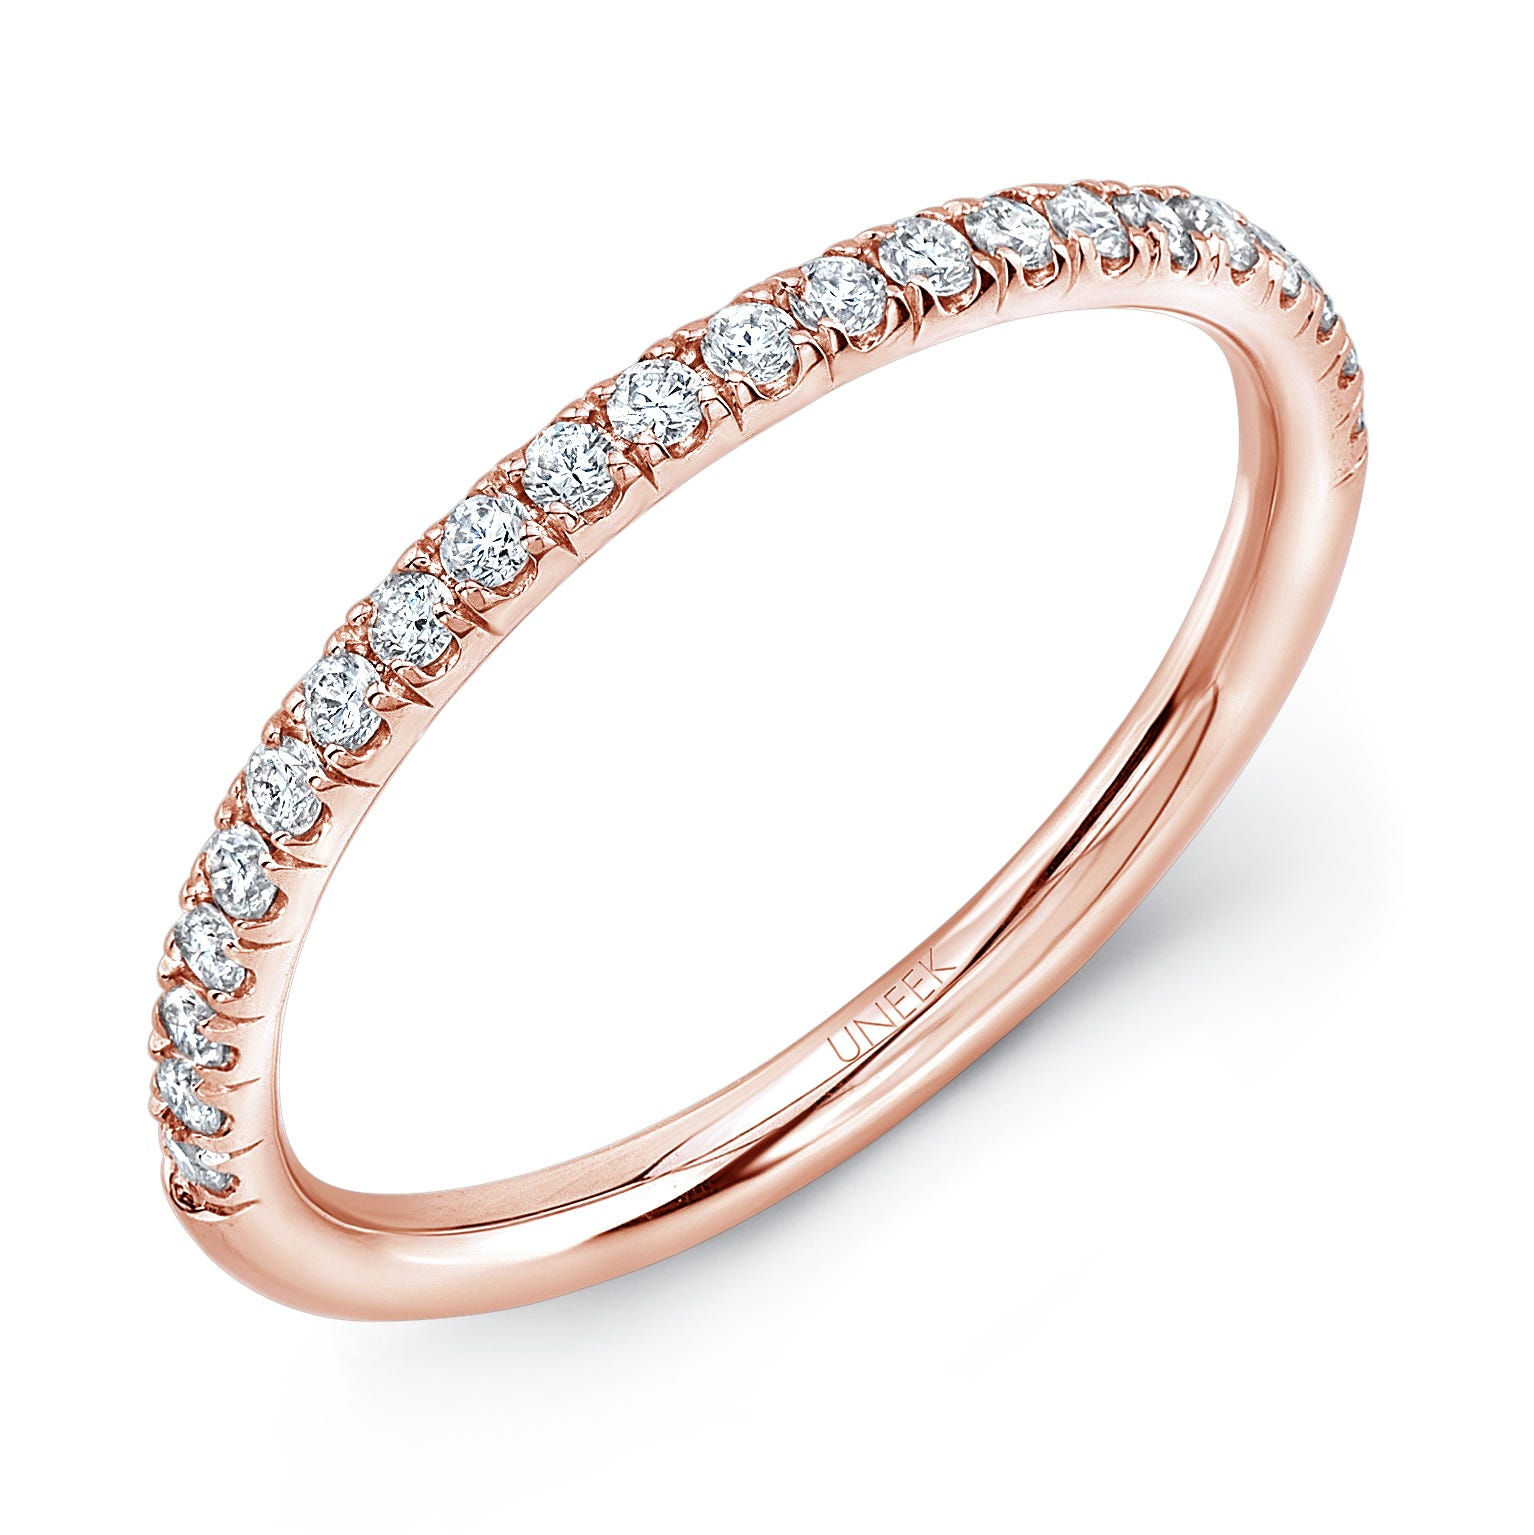 Uneek Round Diamond Wedding Band in 14K Rose Gold